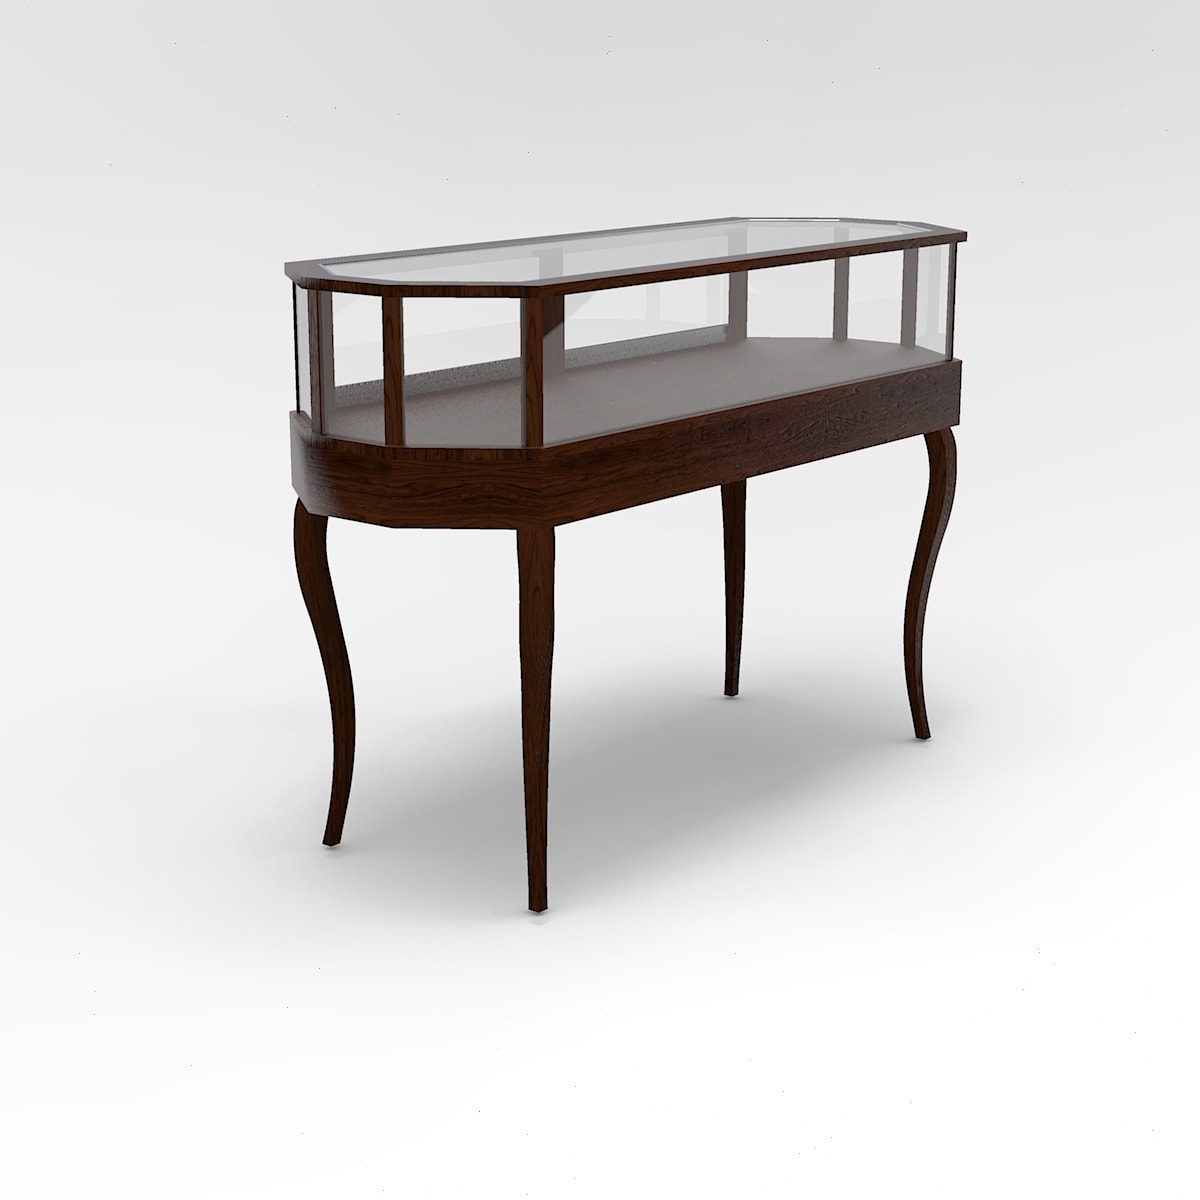 60 Inch Jewelry Vision Country French Leg Octagon Horizontal Display Case to Purchase